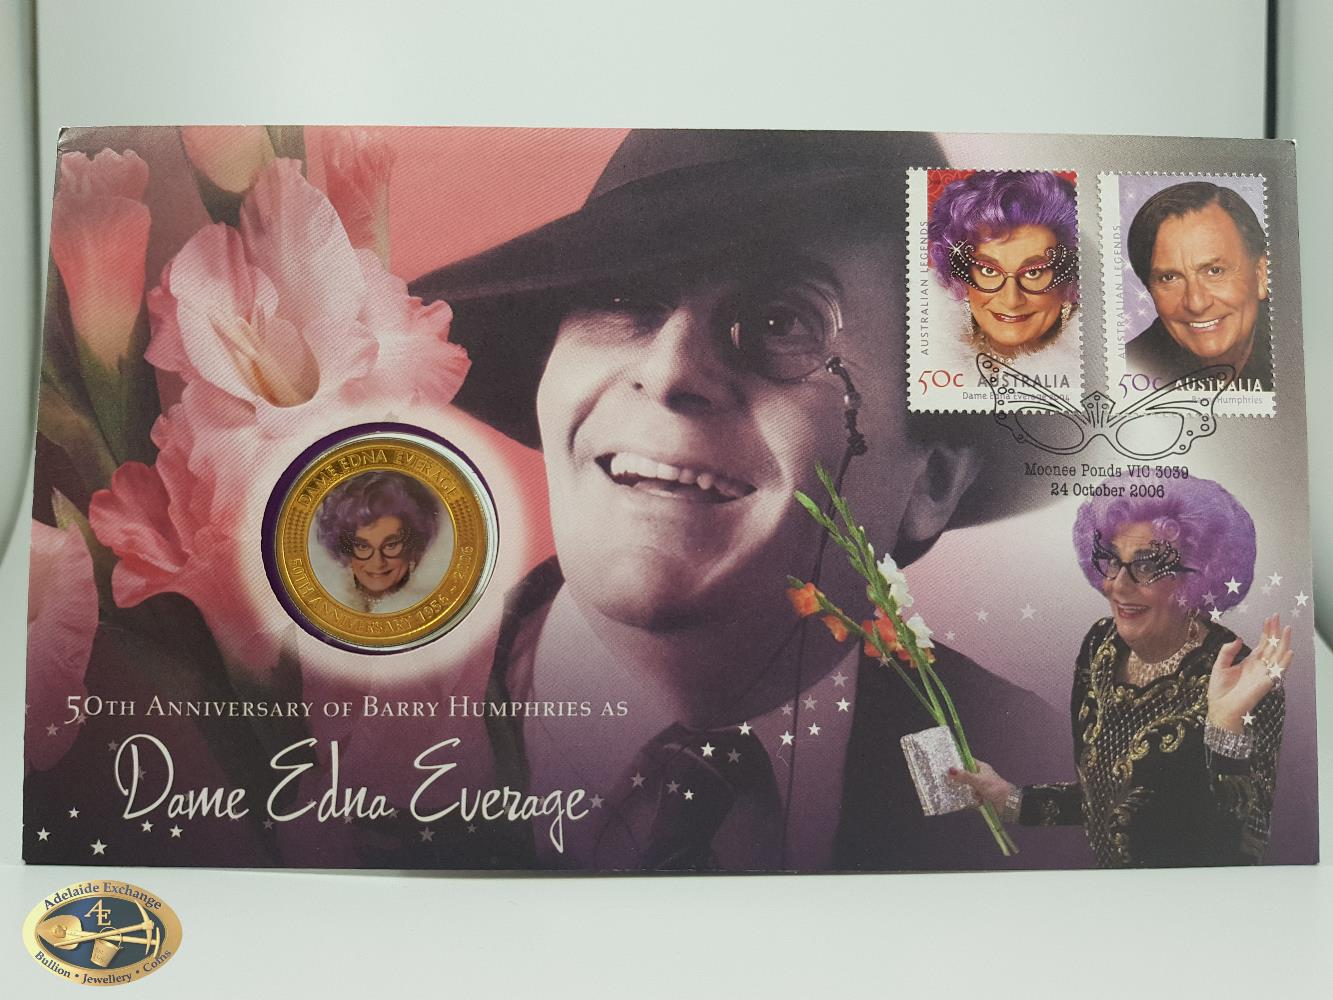 2006 50th Anniversary Of Barry Humphries As Dame Edna